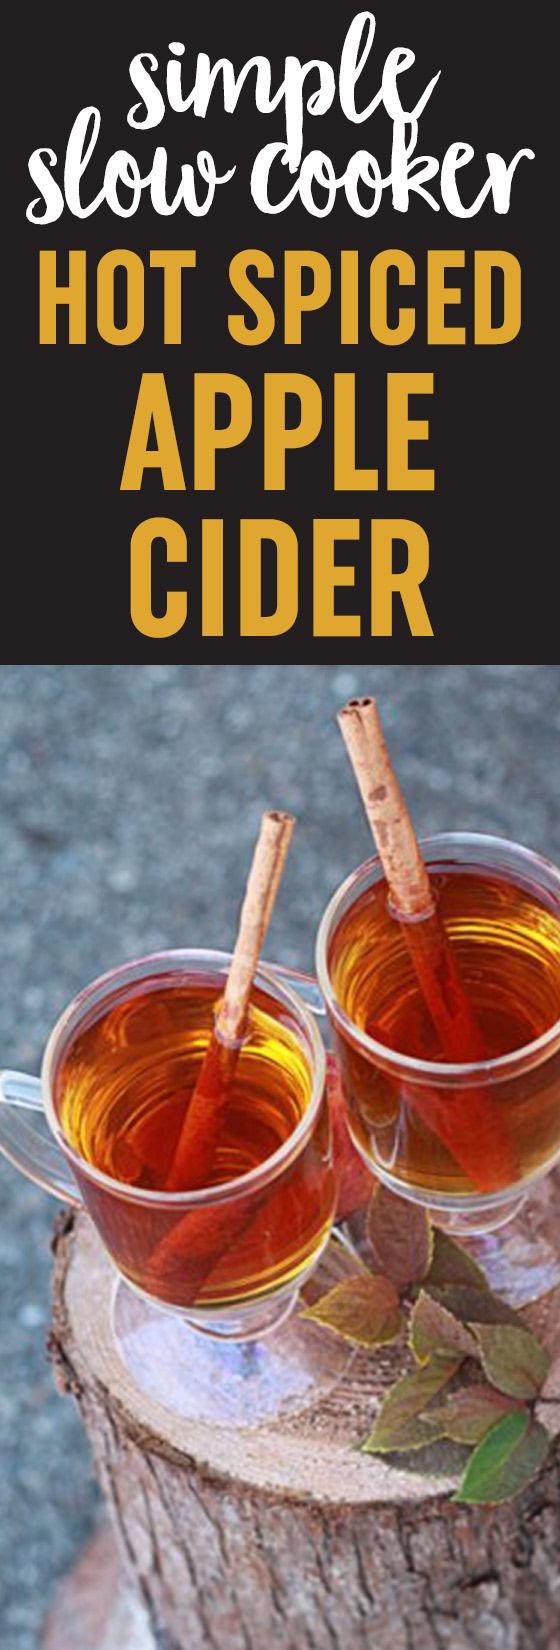 Grab an orange. Stick some cloves in it. Throw it in your Crock Pot along with a few cinnamon sticks and a bottle of apple cider. Turn it on. Wait four hours. Pour into mugs and add rum if you like. THERE! Now you have hot apple cider and NOW it can be fall. #hotapplecider #slowcookercider #fall